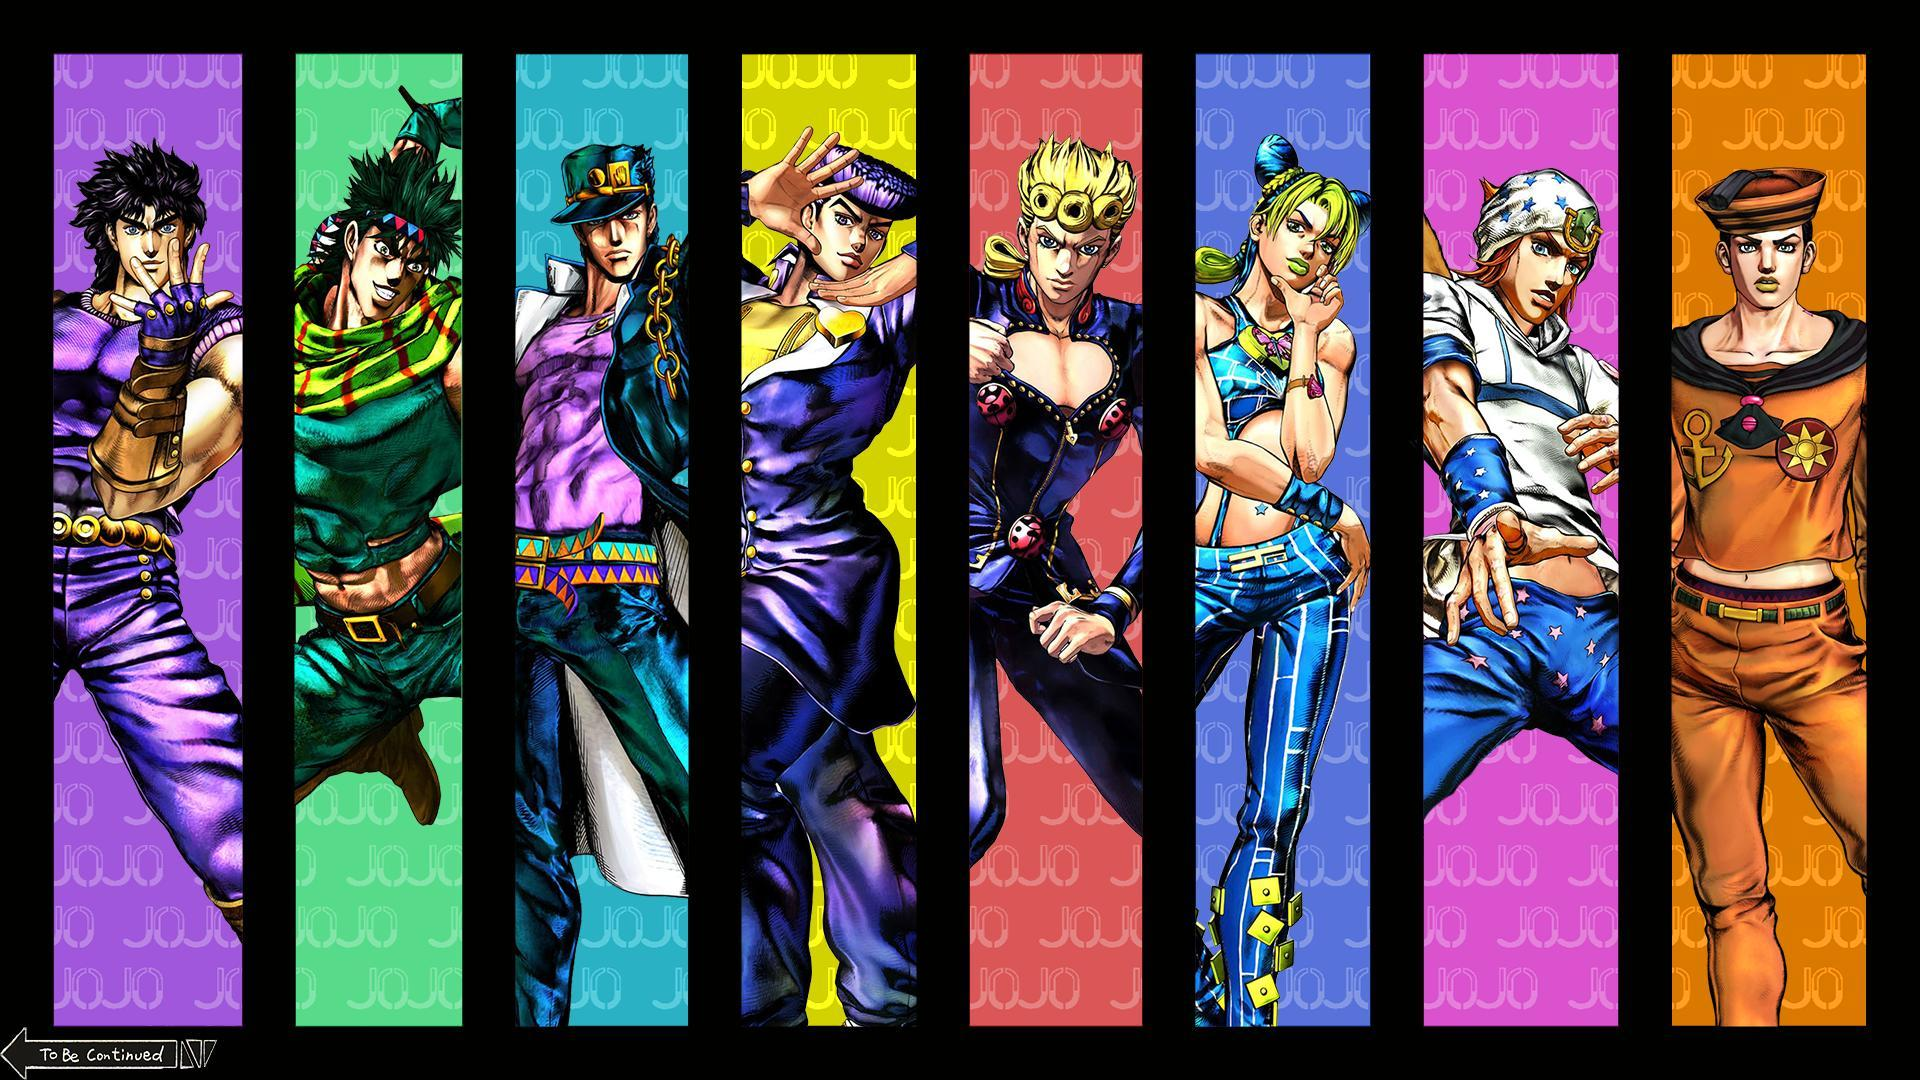 Jojo backgrounds